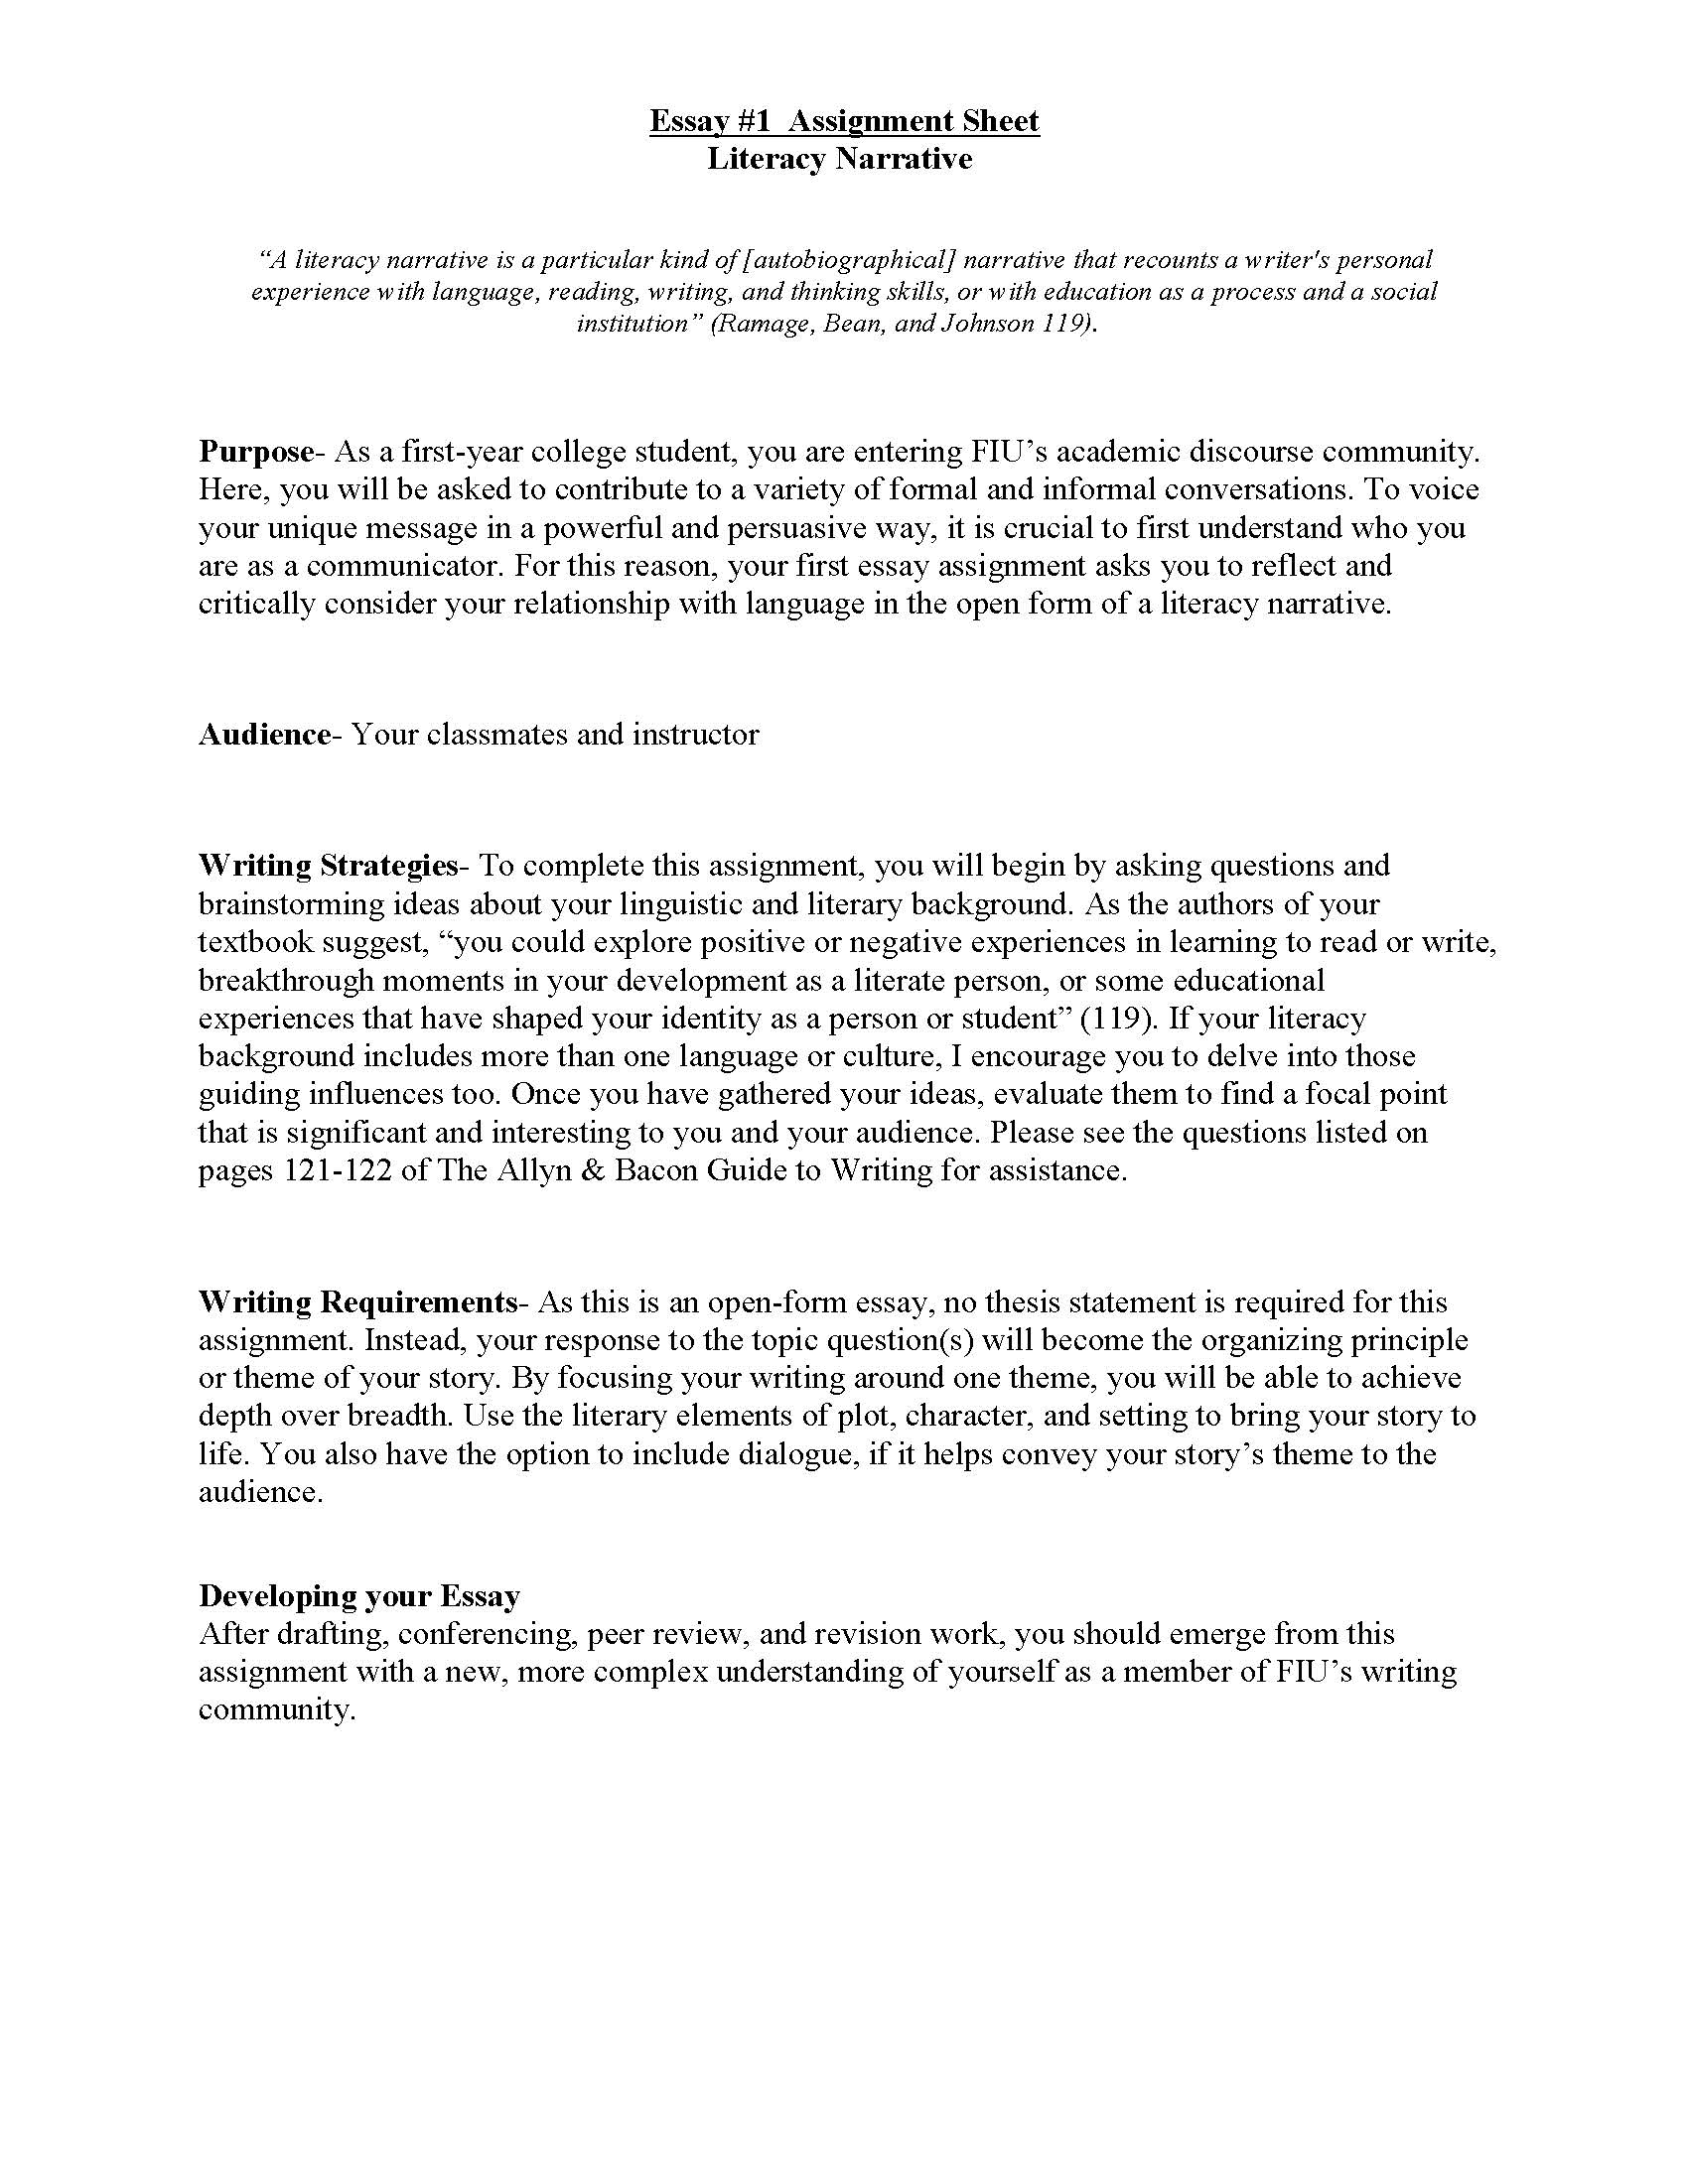 010 What Are Critical Elements Of Descriptive Essays Literacy Narrative Unit Assignment Spring 2012 Page 1 Essay Shocking The Full